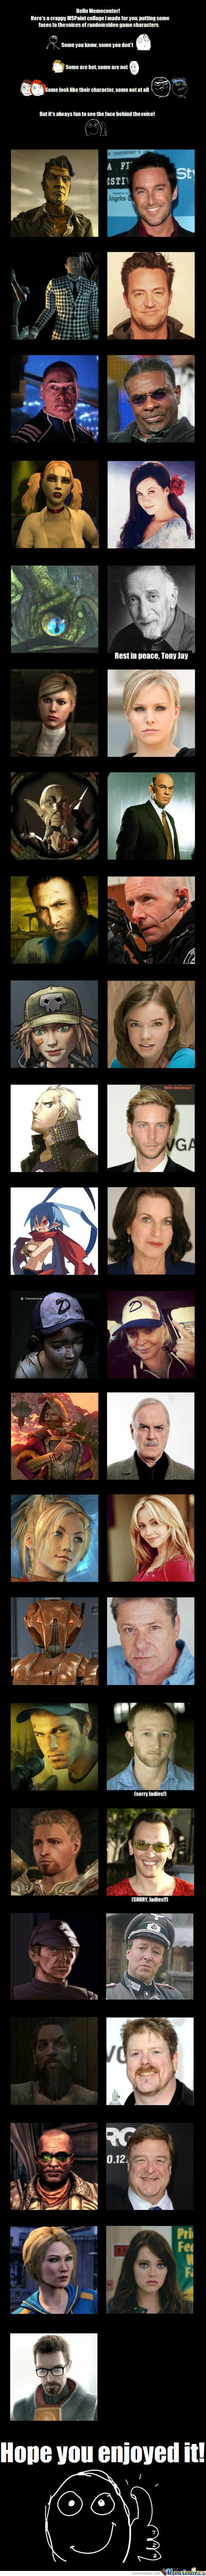 Vg Characters And Their Voice Actors